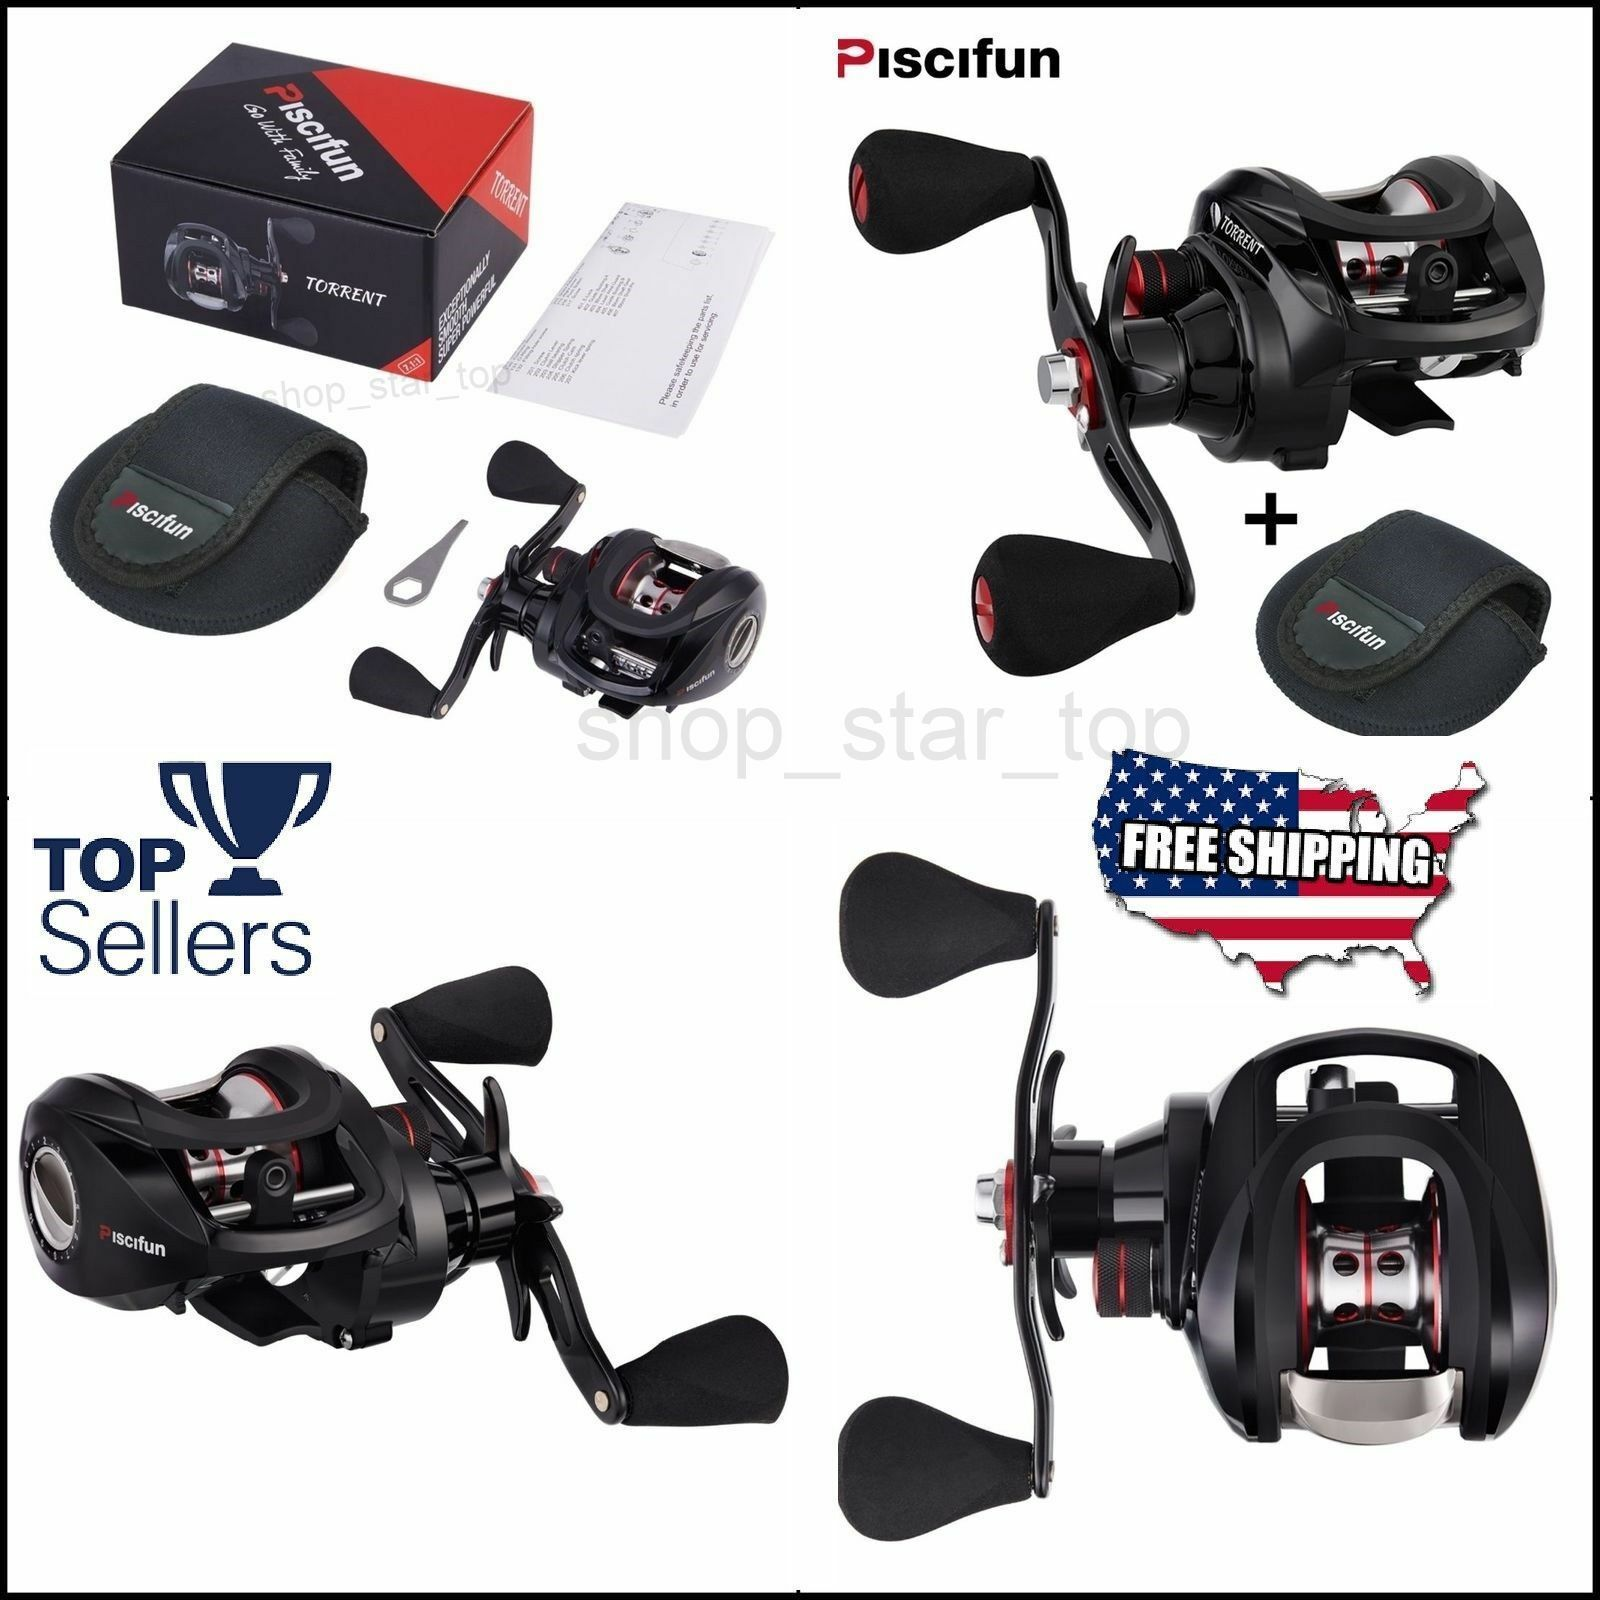 Piscifun Torrent Baitcasting Reel With Cover Bag Carbon Drag  7.1 1 Gear SET BEST  best-selling